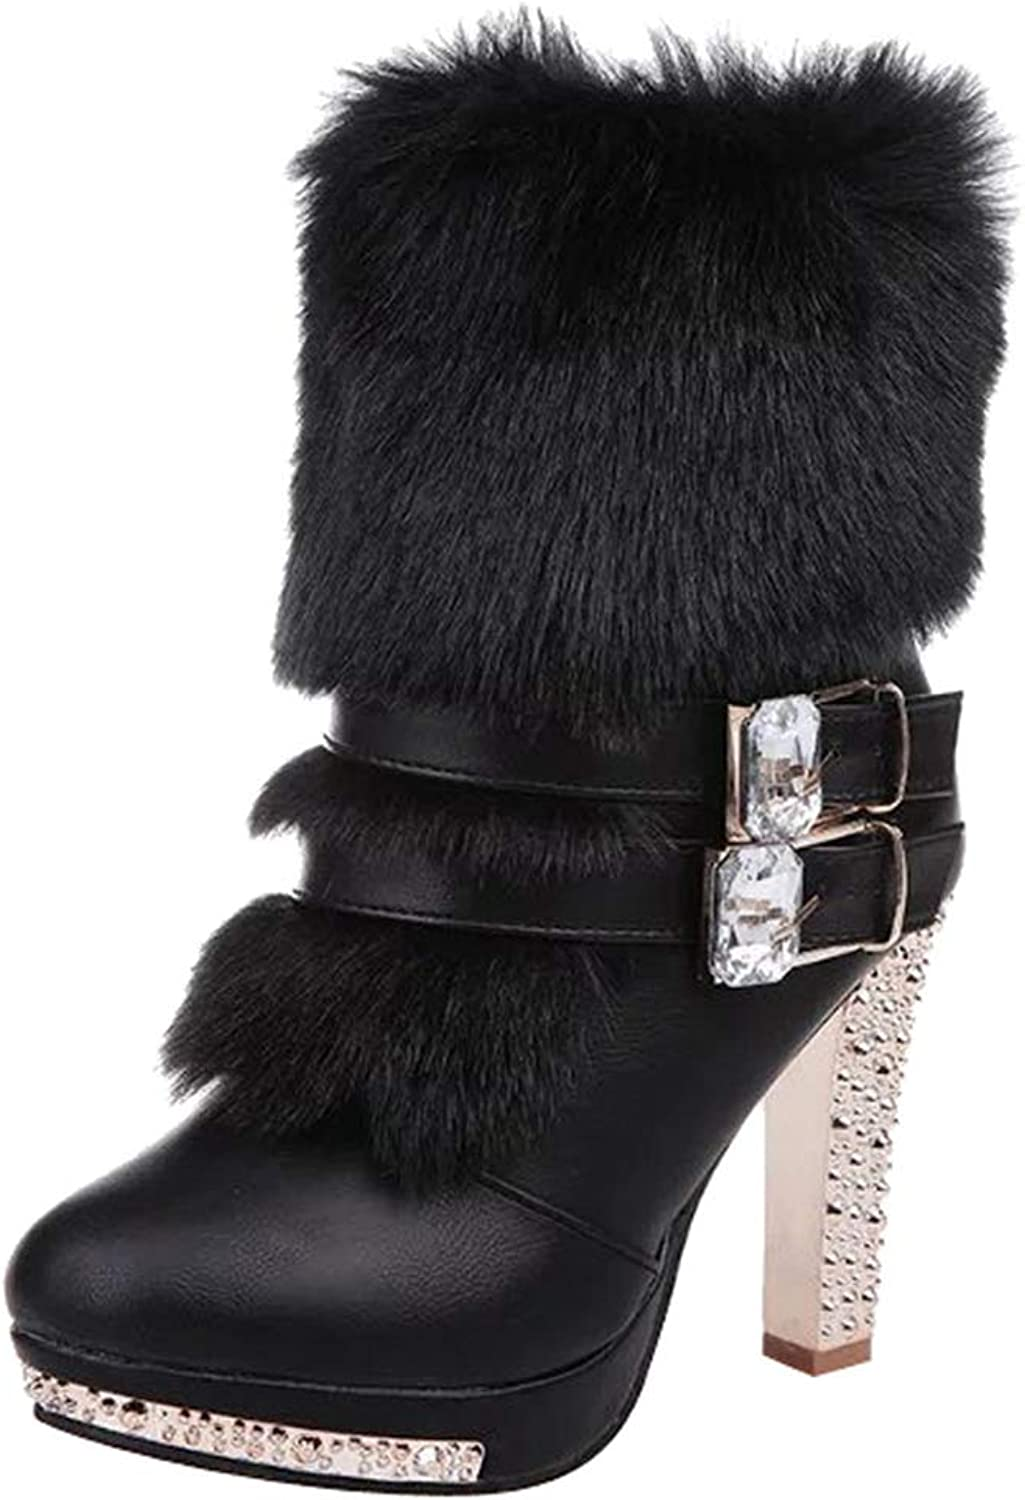 Zarbrina Womens Chunky Heel Fur Lined Ankle Boots Fashion Sexy Pointed Toe Rubber Sole Buckle Strap Zipper Up Winter Warm Party Dress Snow shoes